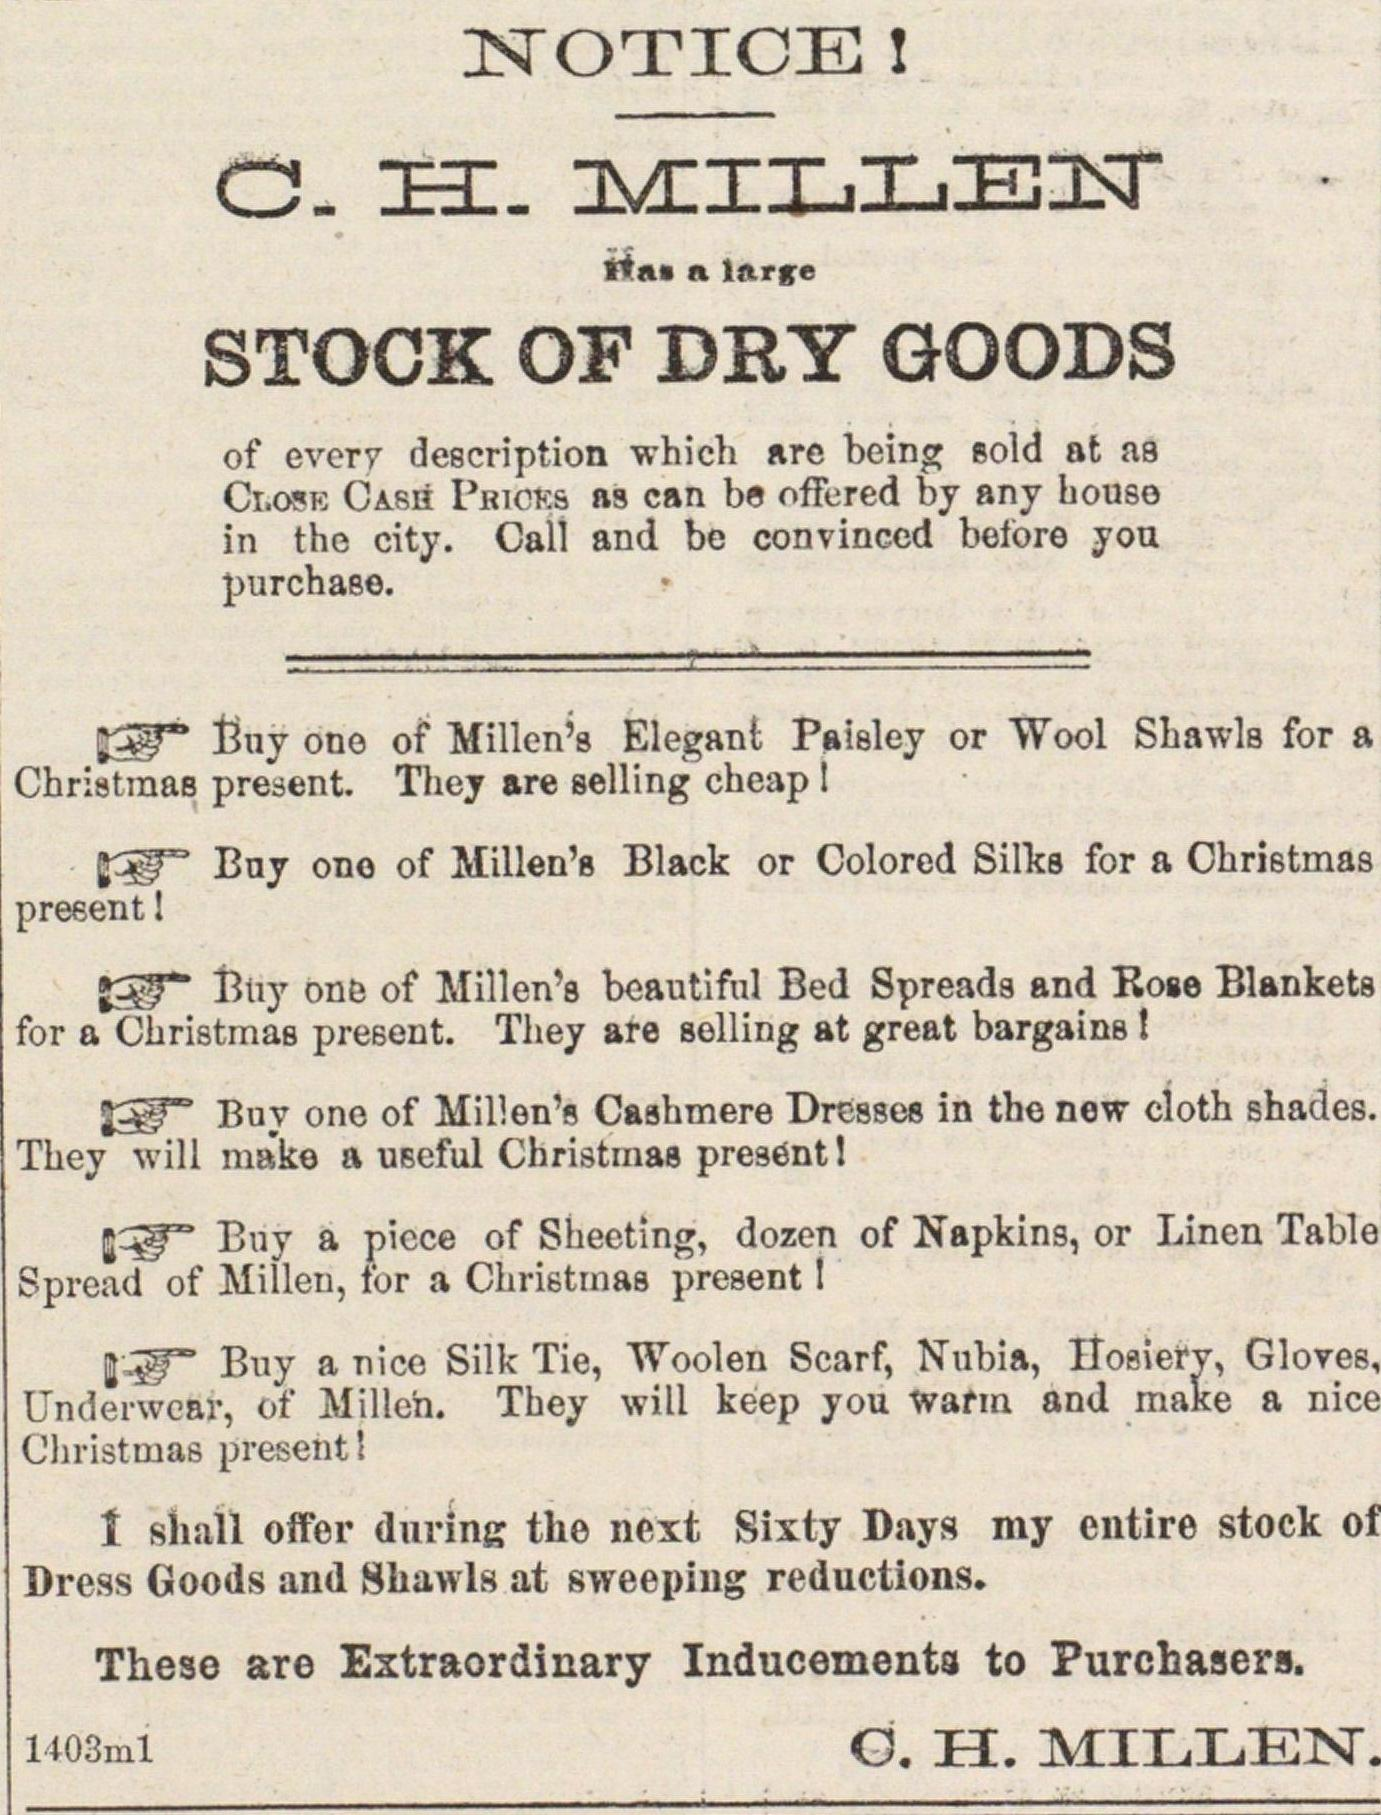 Stock Of Dry Goods image